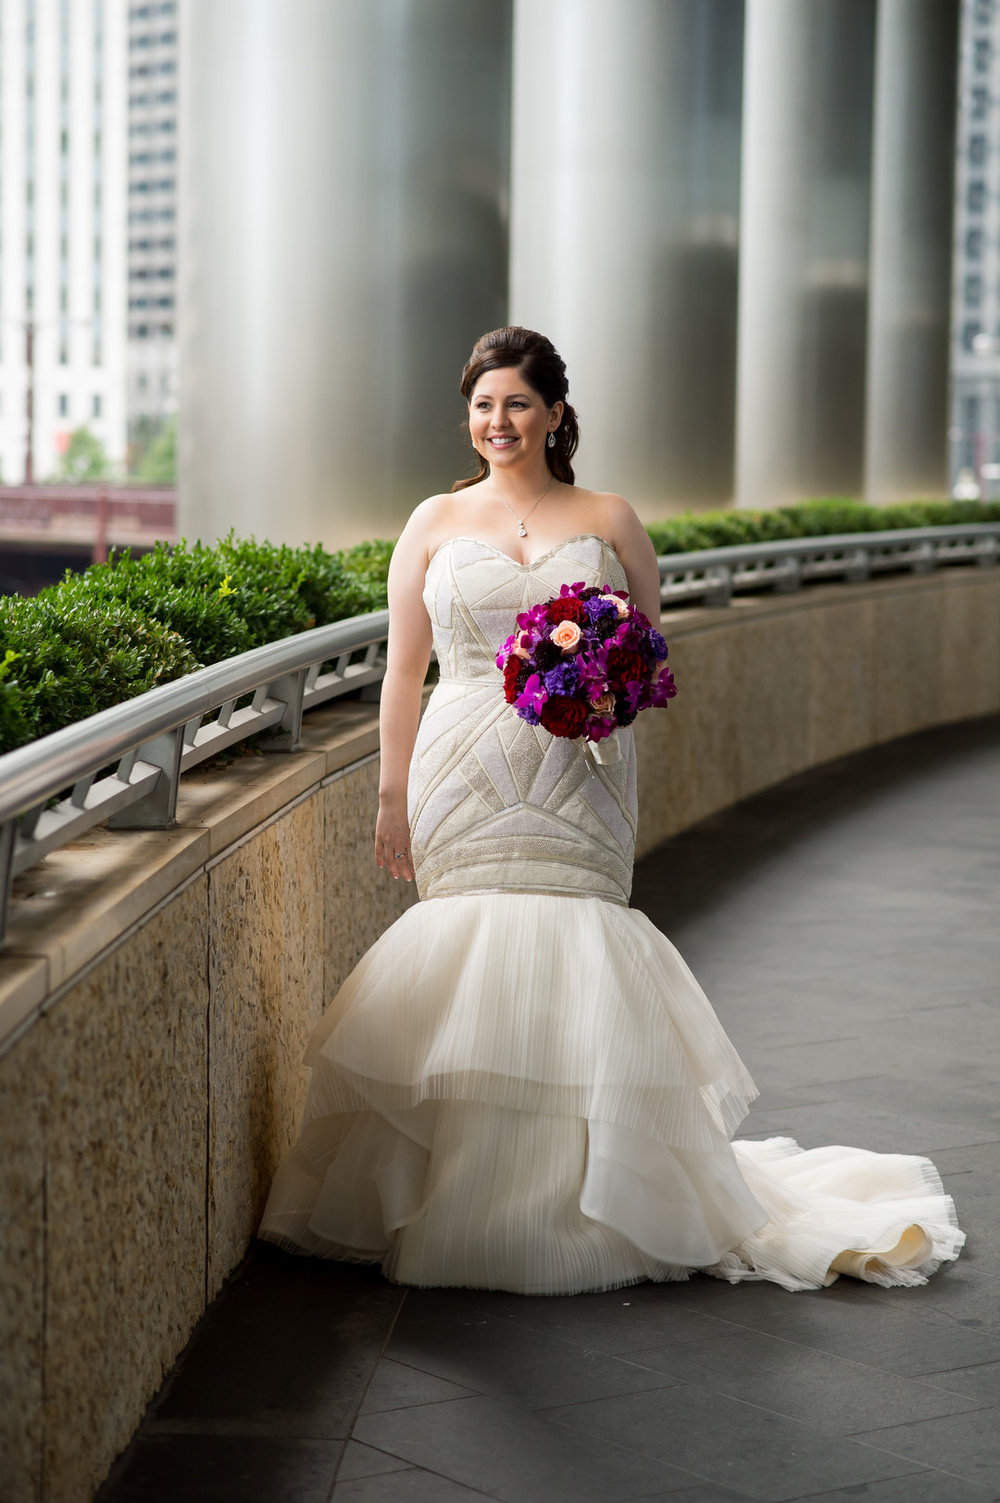 Purple and Red Bridal Bouquet Stunning Bridal Gown Chicago Wedding Julia Franzosa Photography